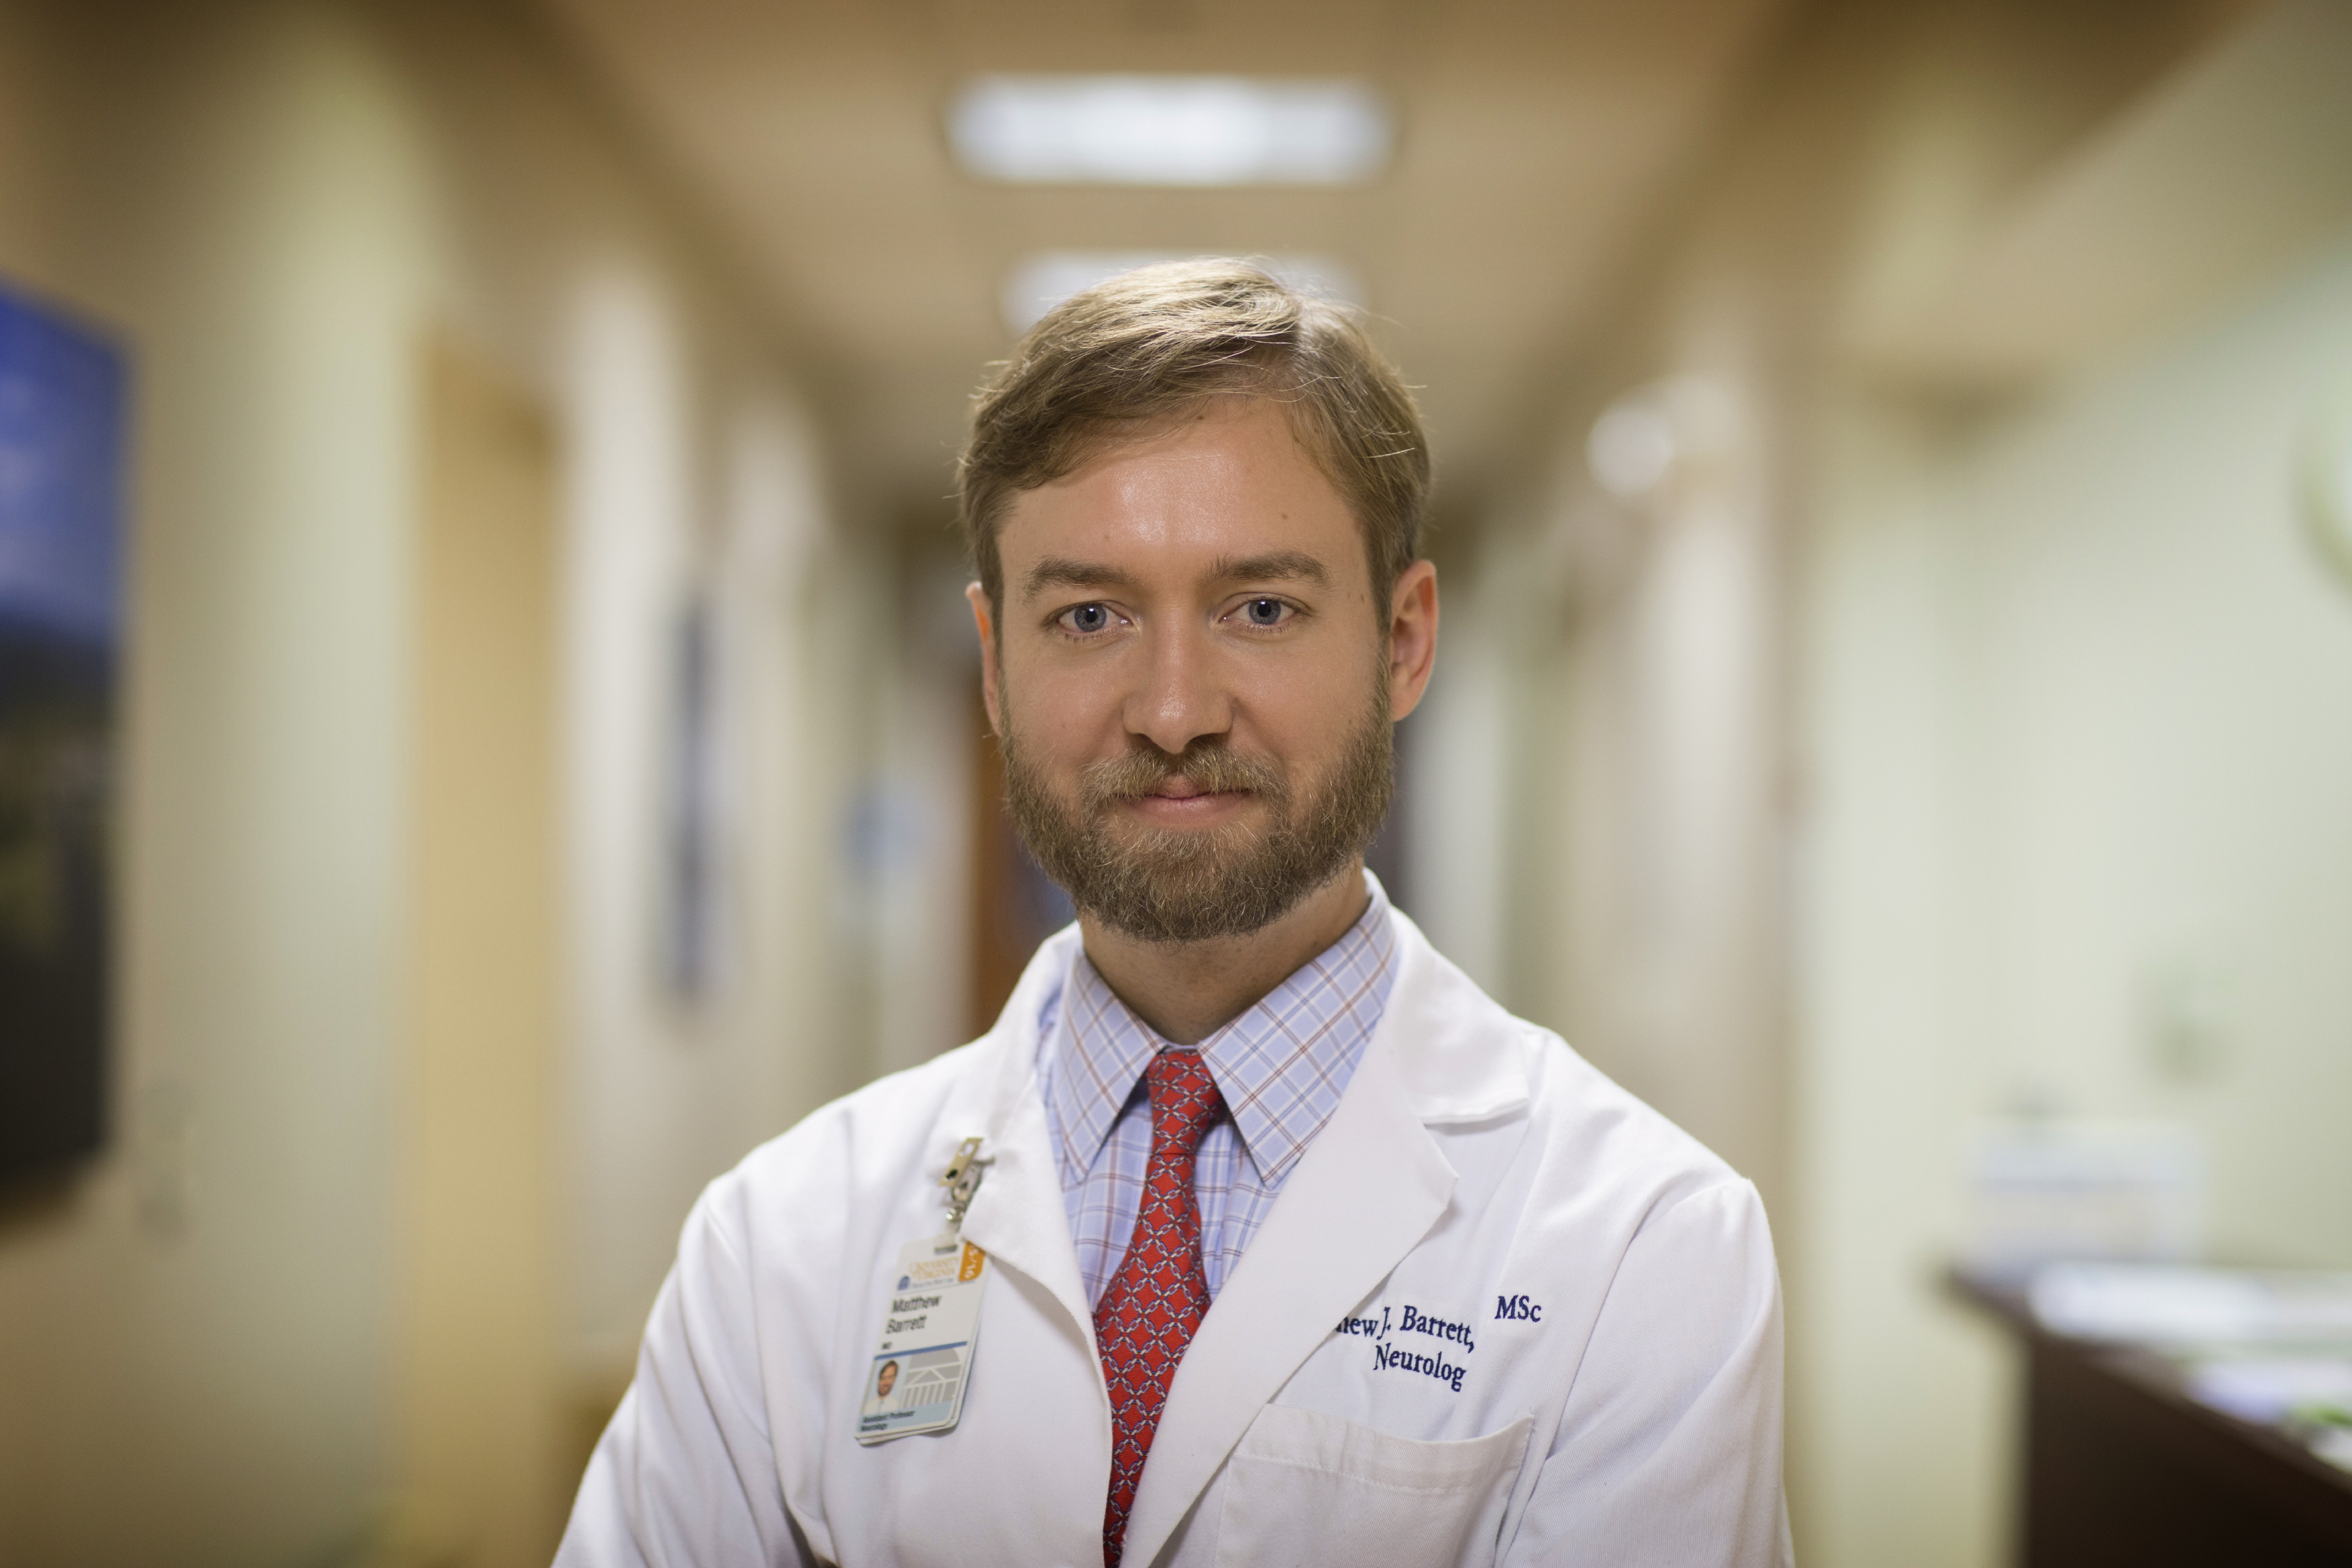 Dr. Matthew Barrett said UVA is in the early stages of bringing a clinical trial for Lewy body dementia to the Health System.